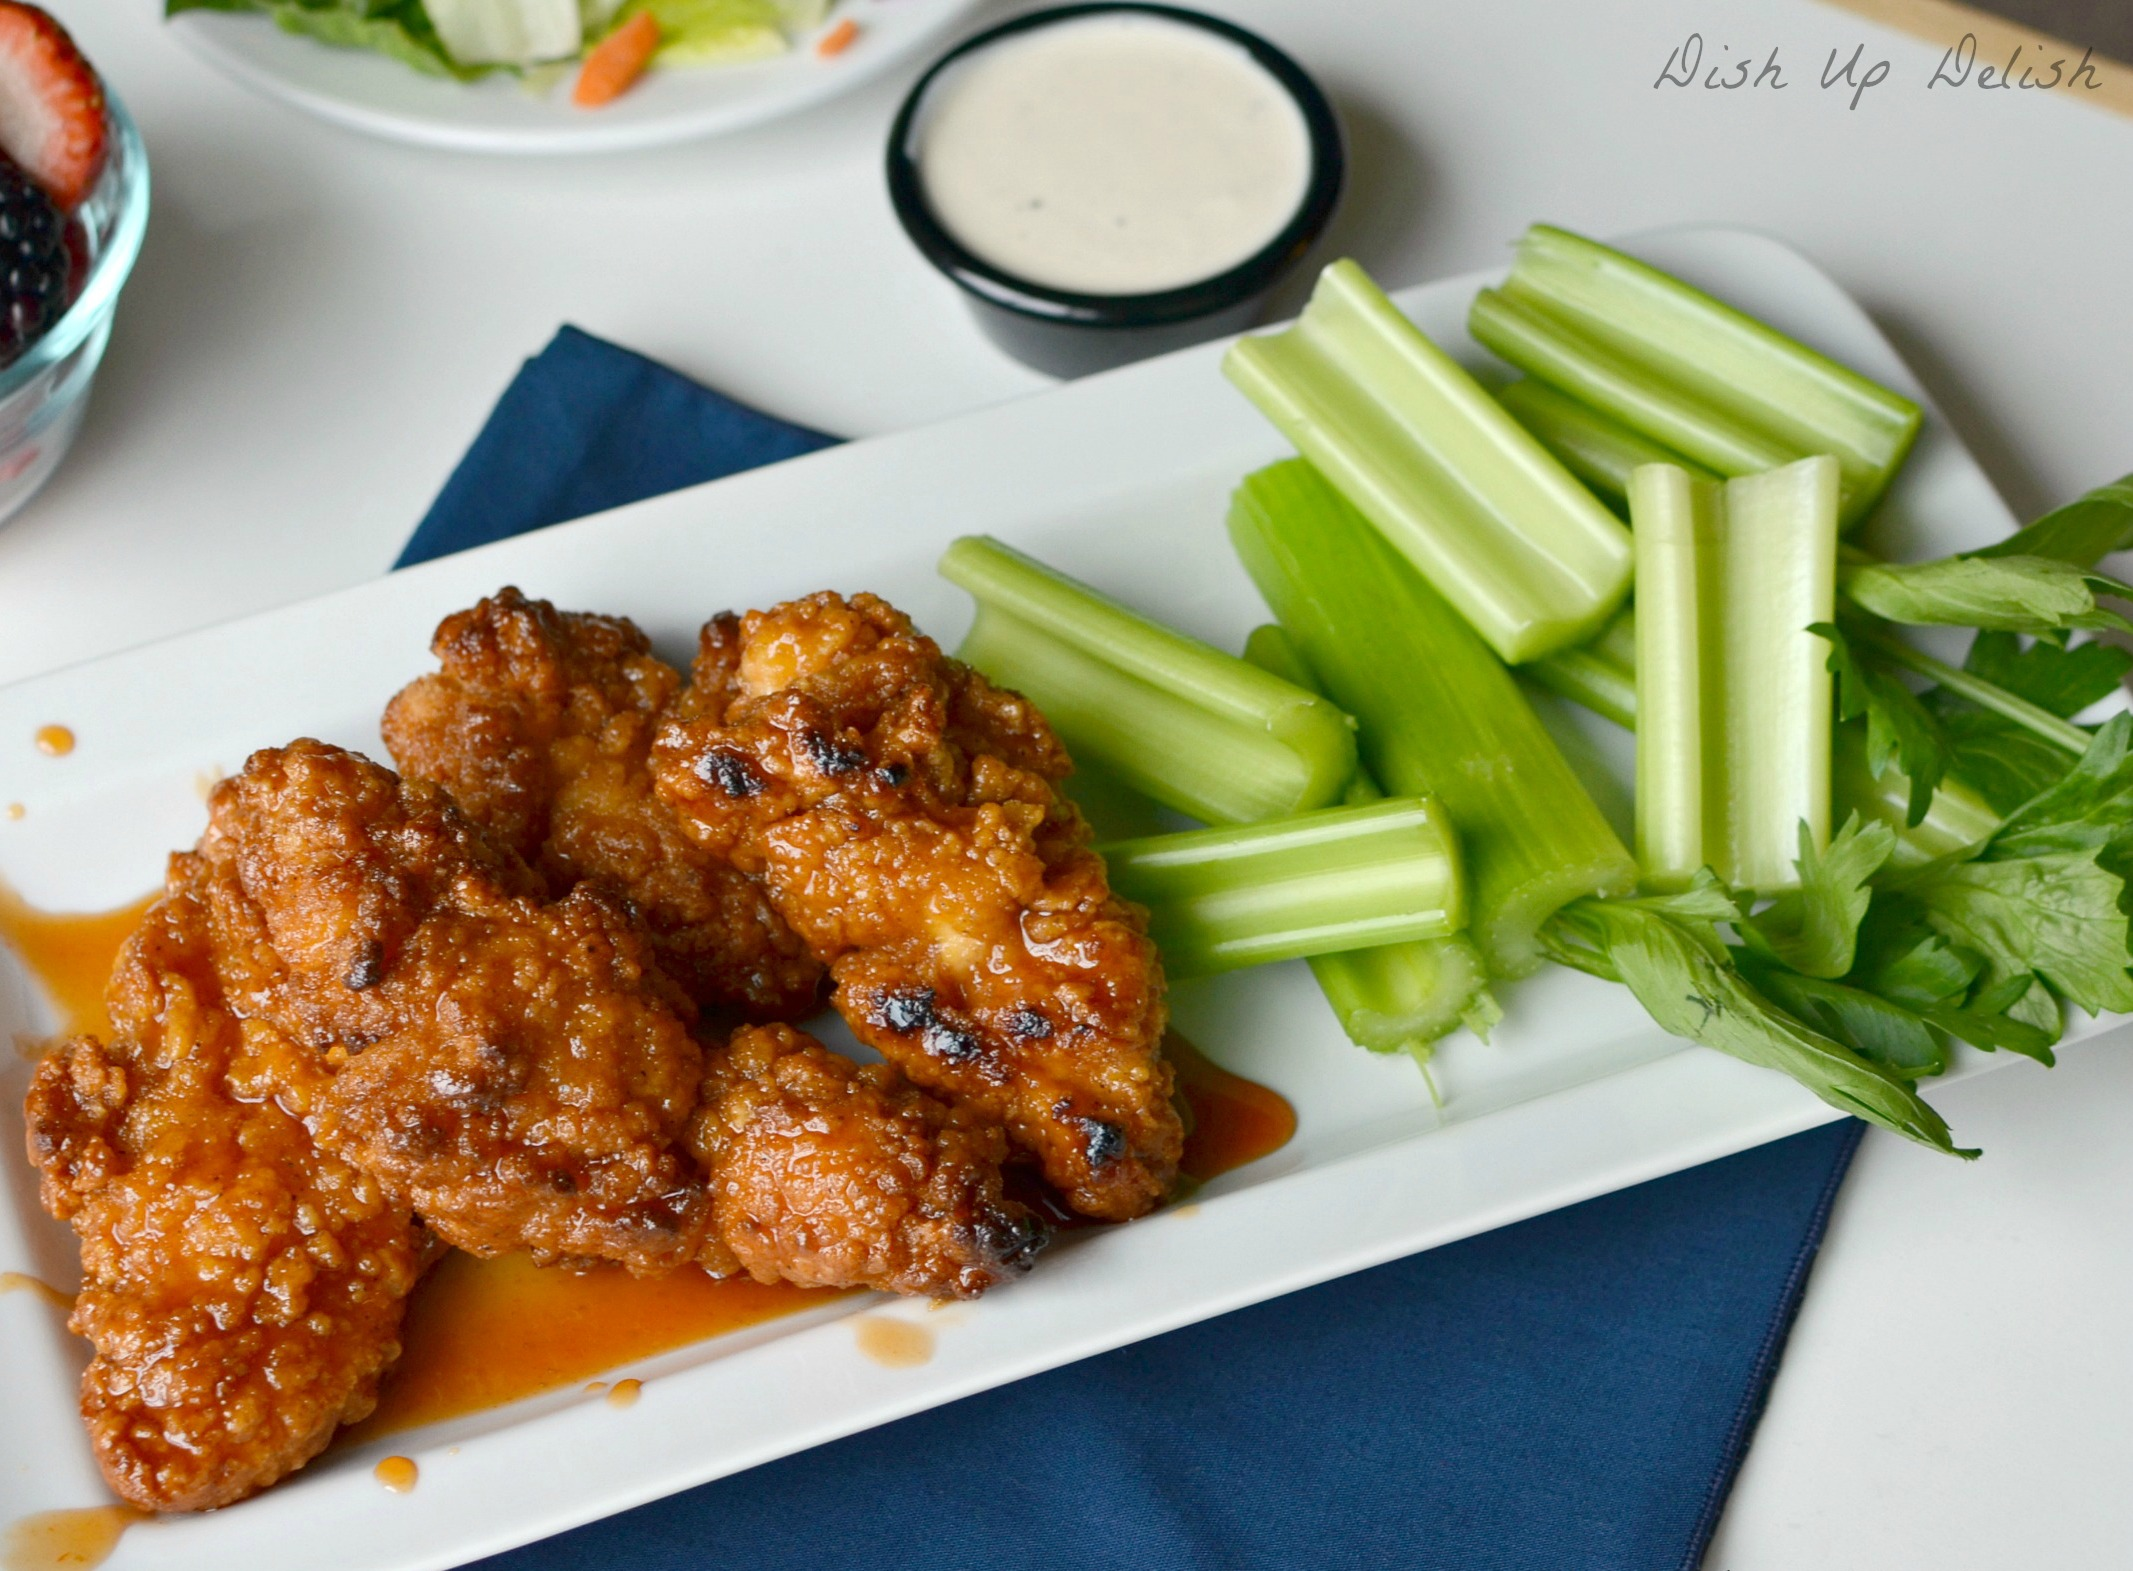 Wingers Chicken: Dish Up Delish